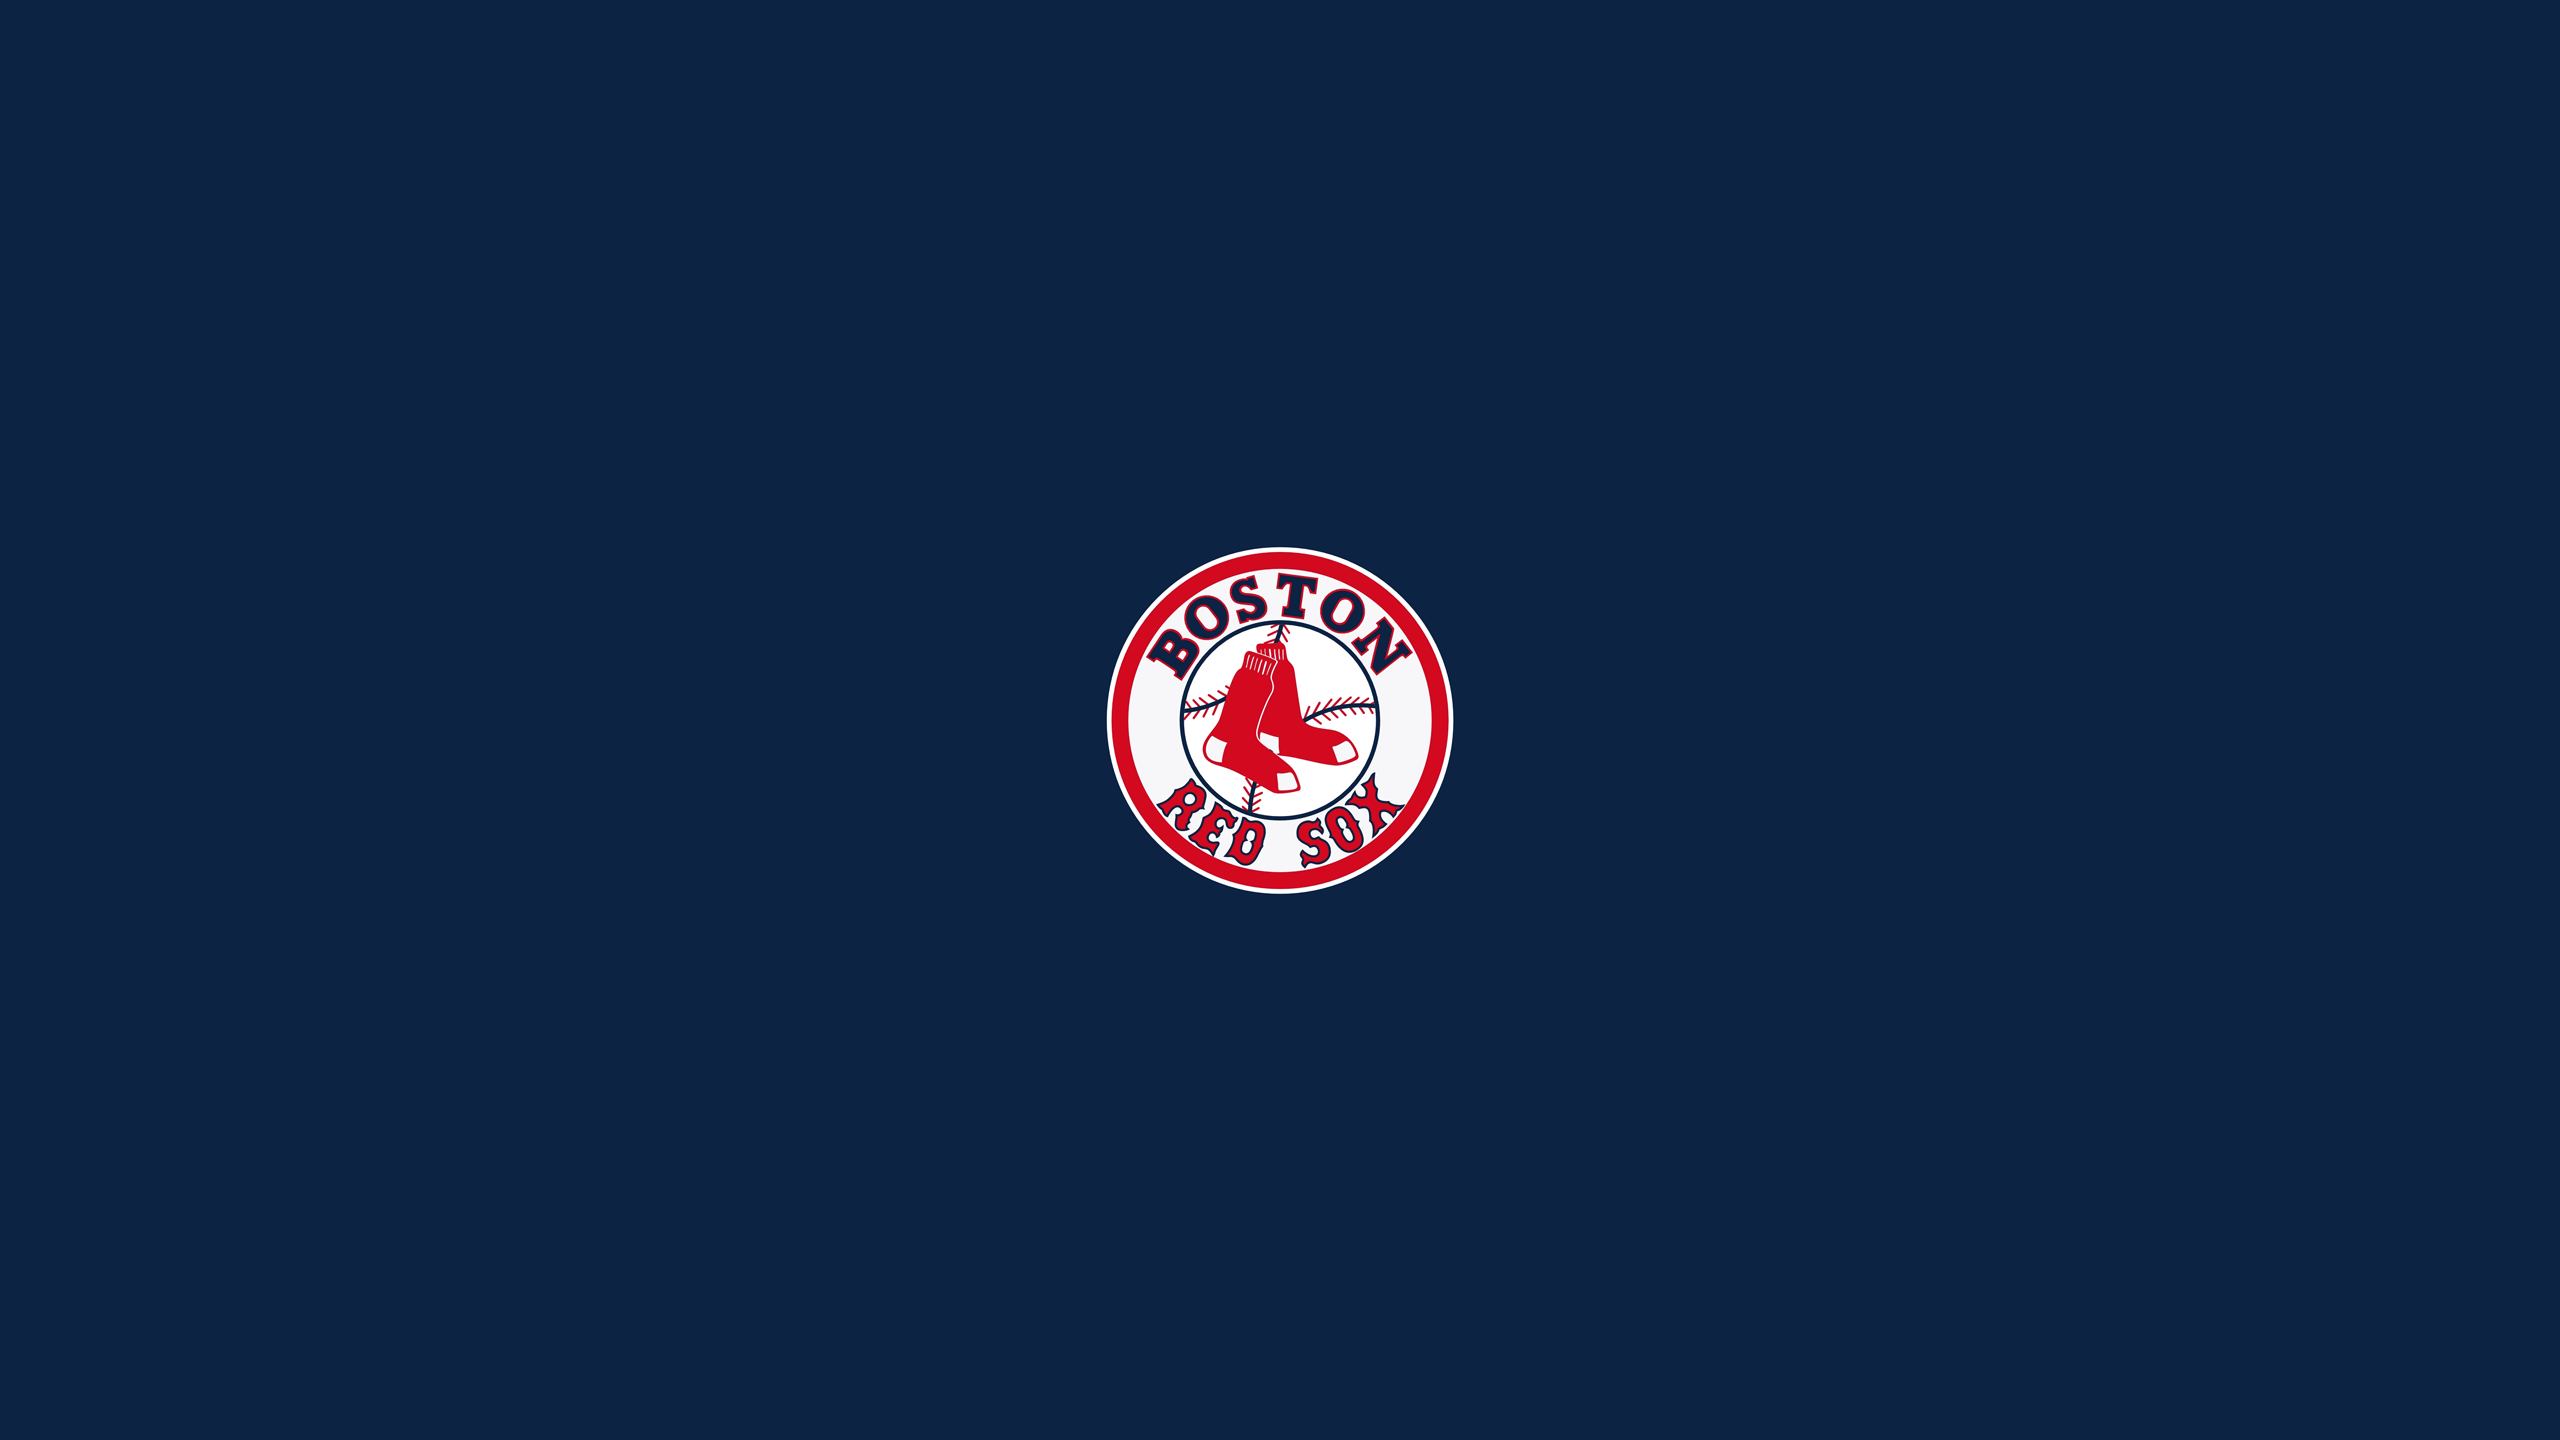 Red Sox Wallpapers 2560x1440